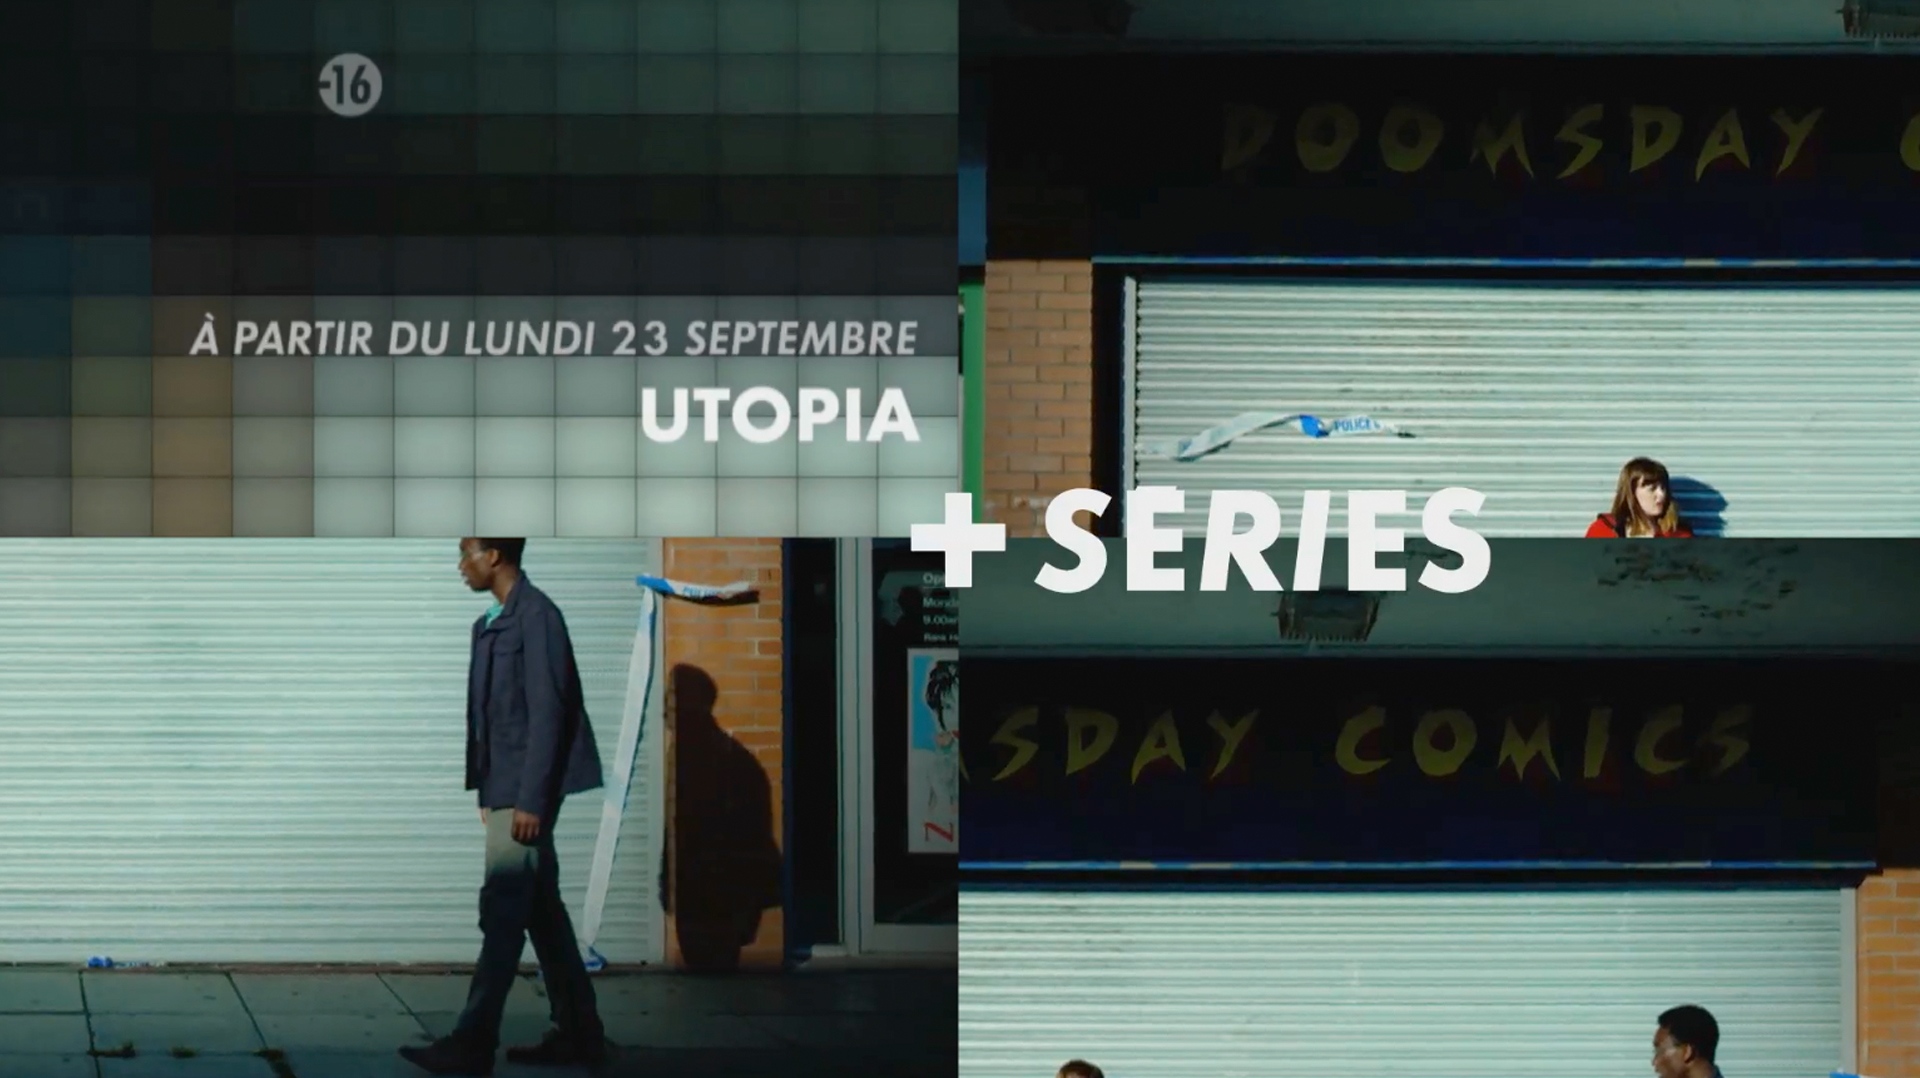 CANAL+-SERIES_OSP-GRAPHICS_UTOPIA